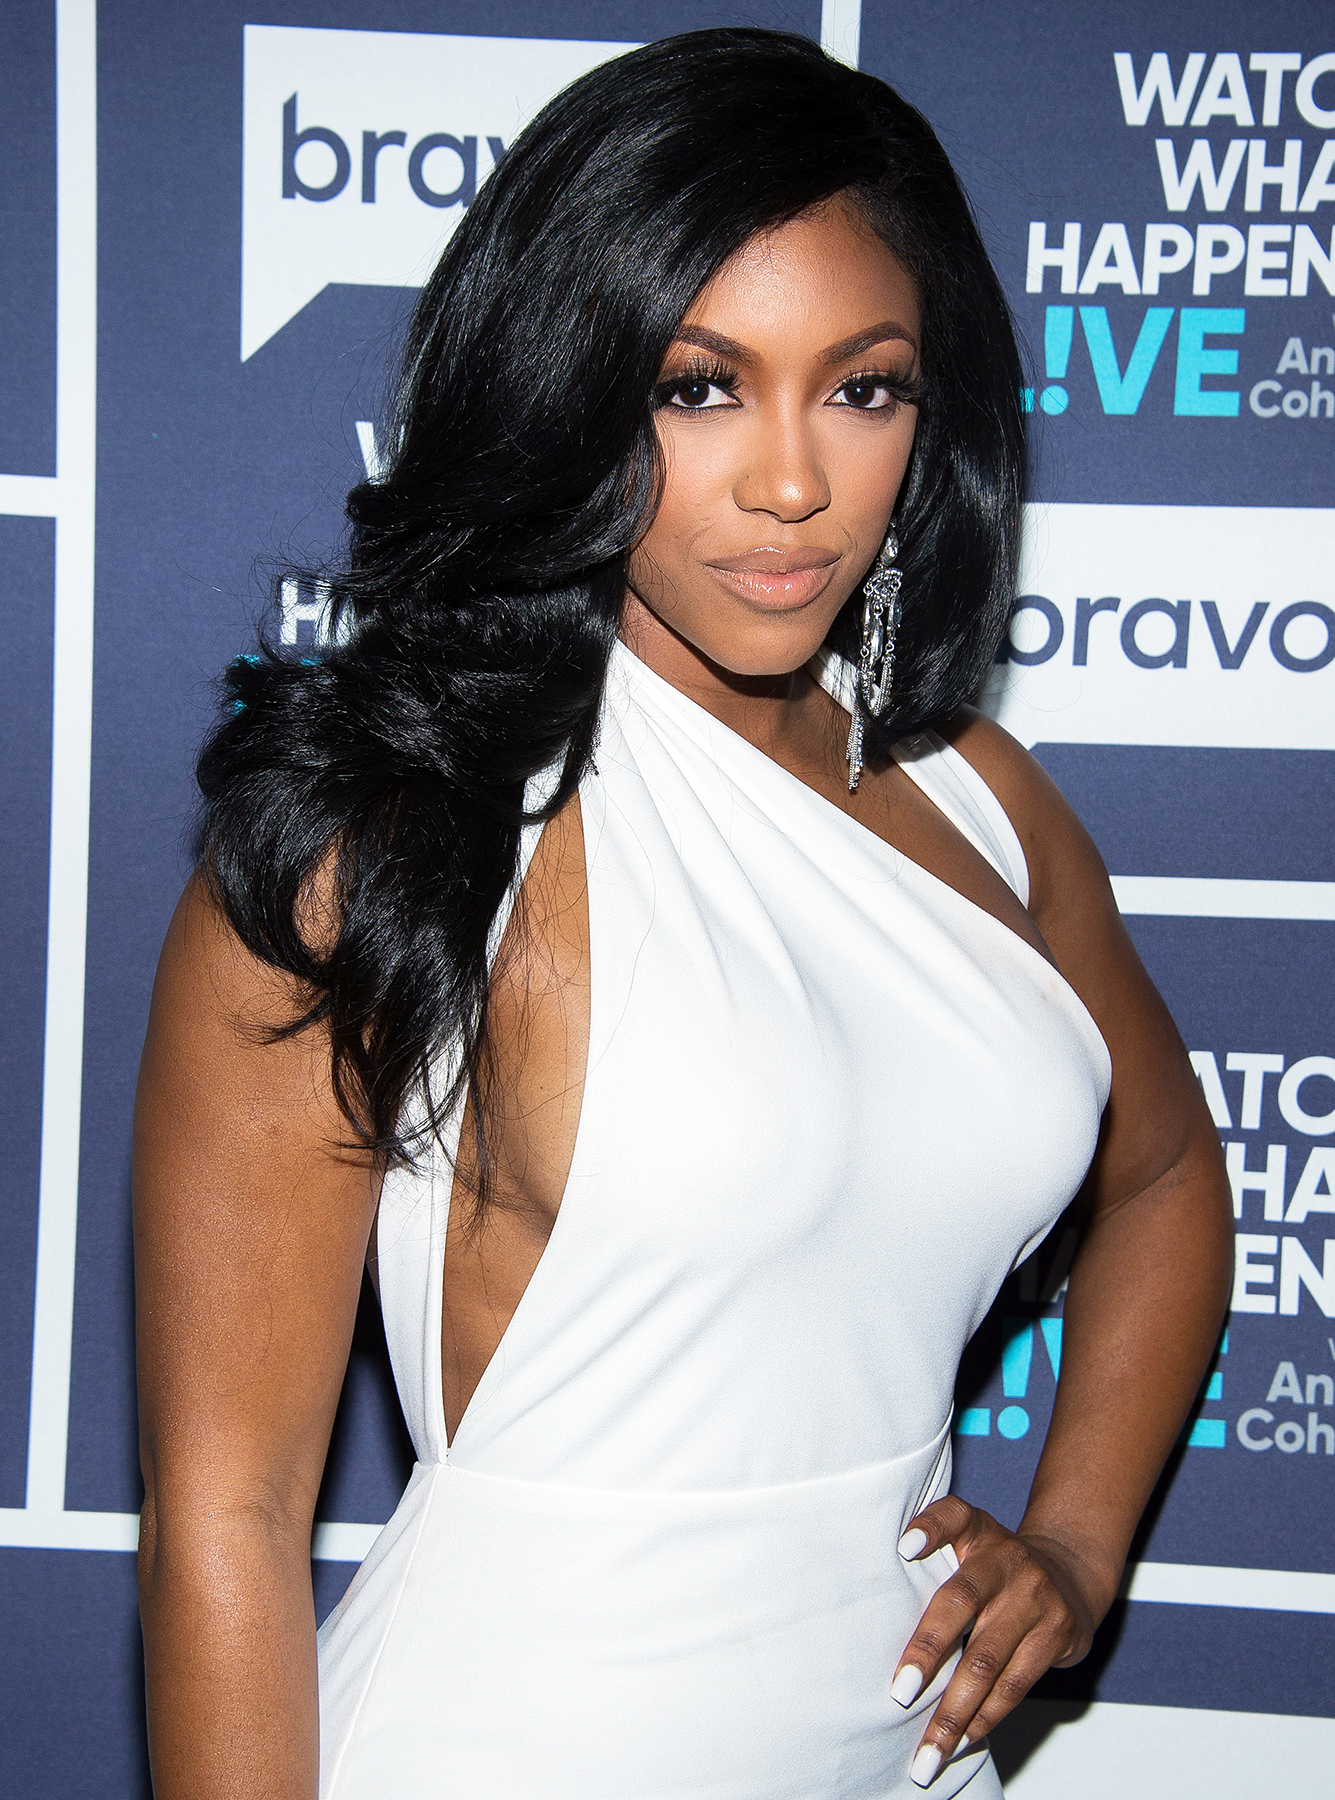 The 39-year old daughter of father Hosea Williams II and mother Diane T. Williams Porsha Williams in 2021 photo. Porsha Williams earned a  million dollar salary - leaving the net worth at 0.5 million in 2021